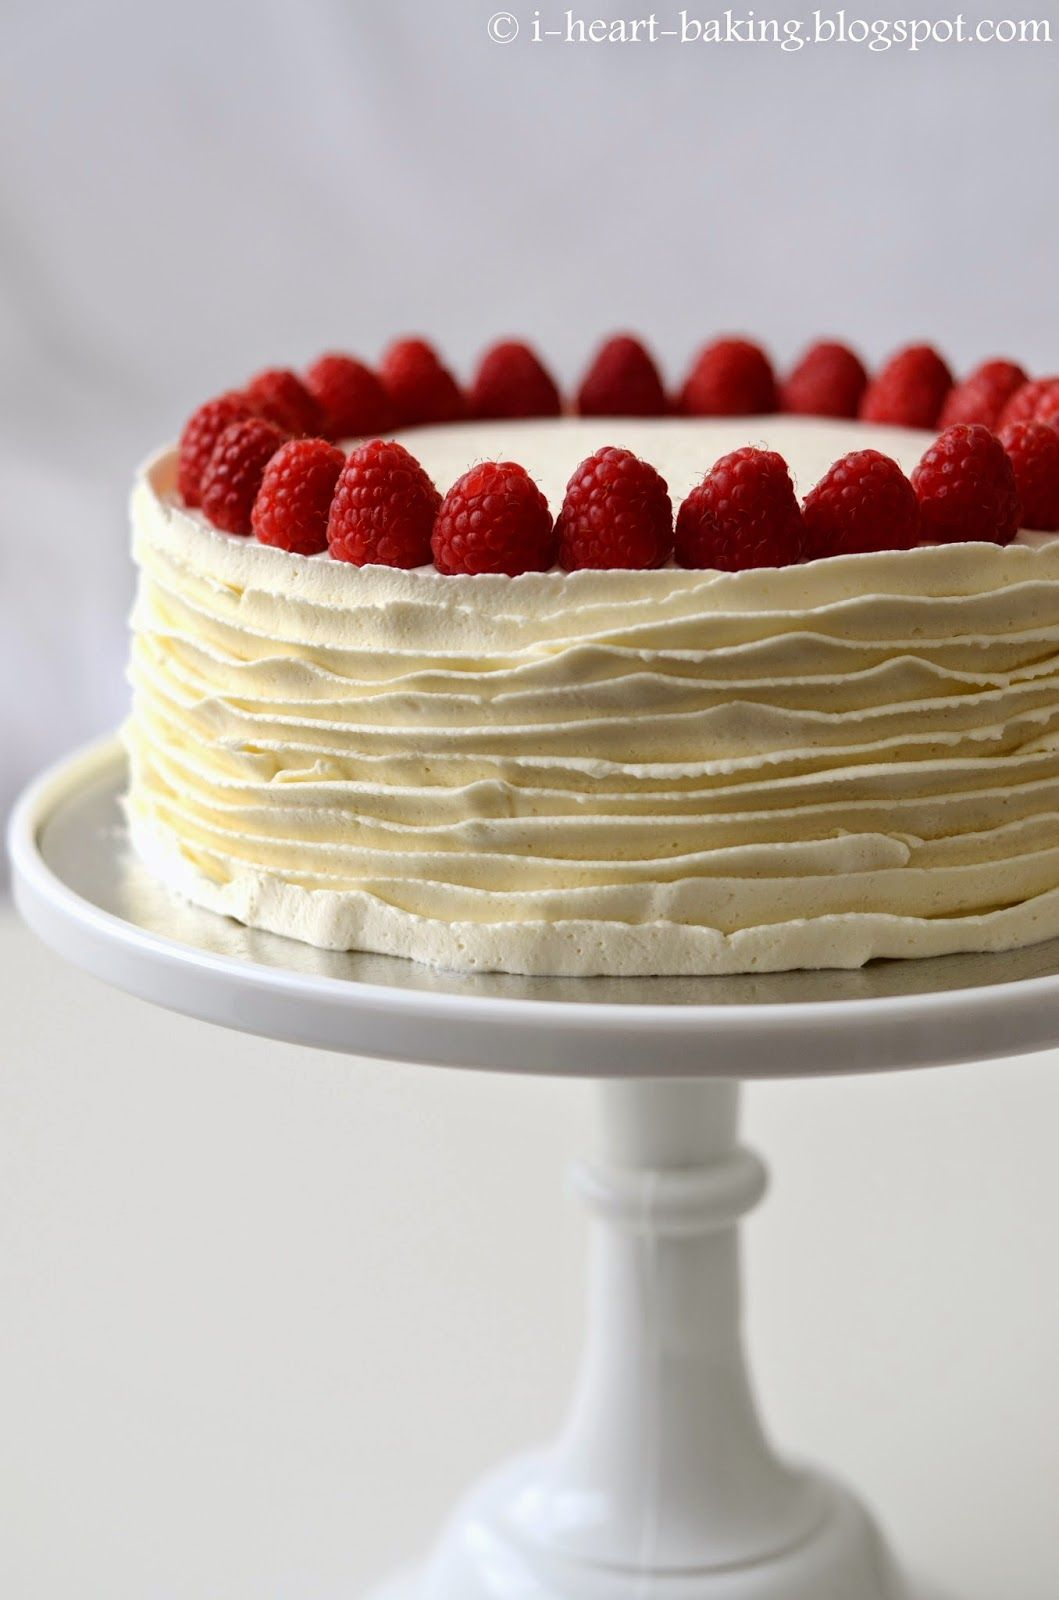 Japanese Style Cotton Cheesecake With Whipped Cream